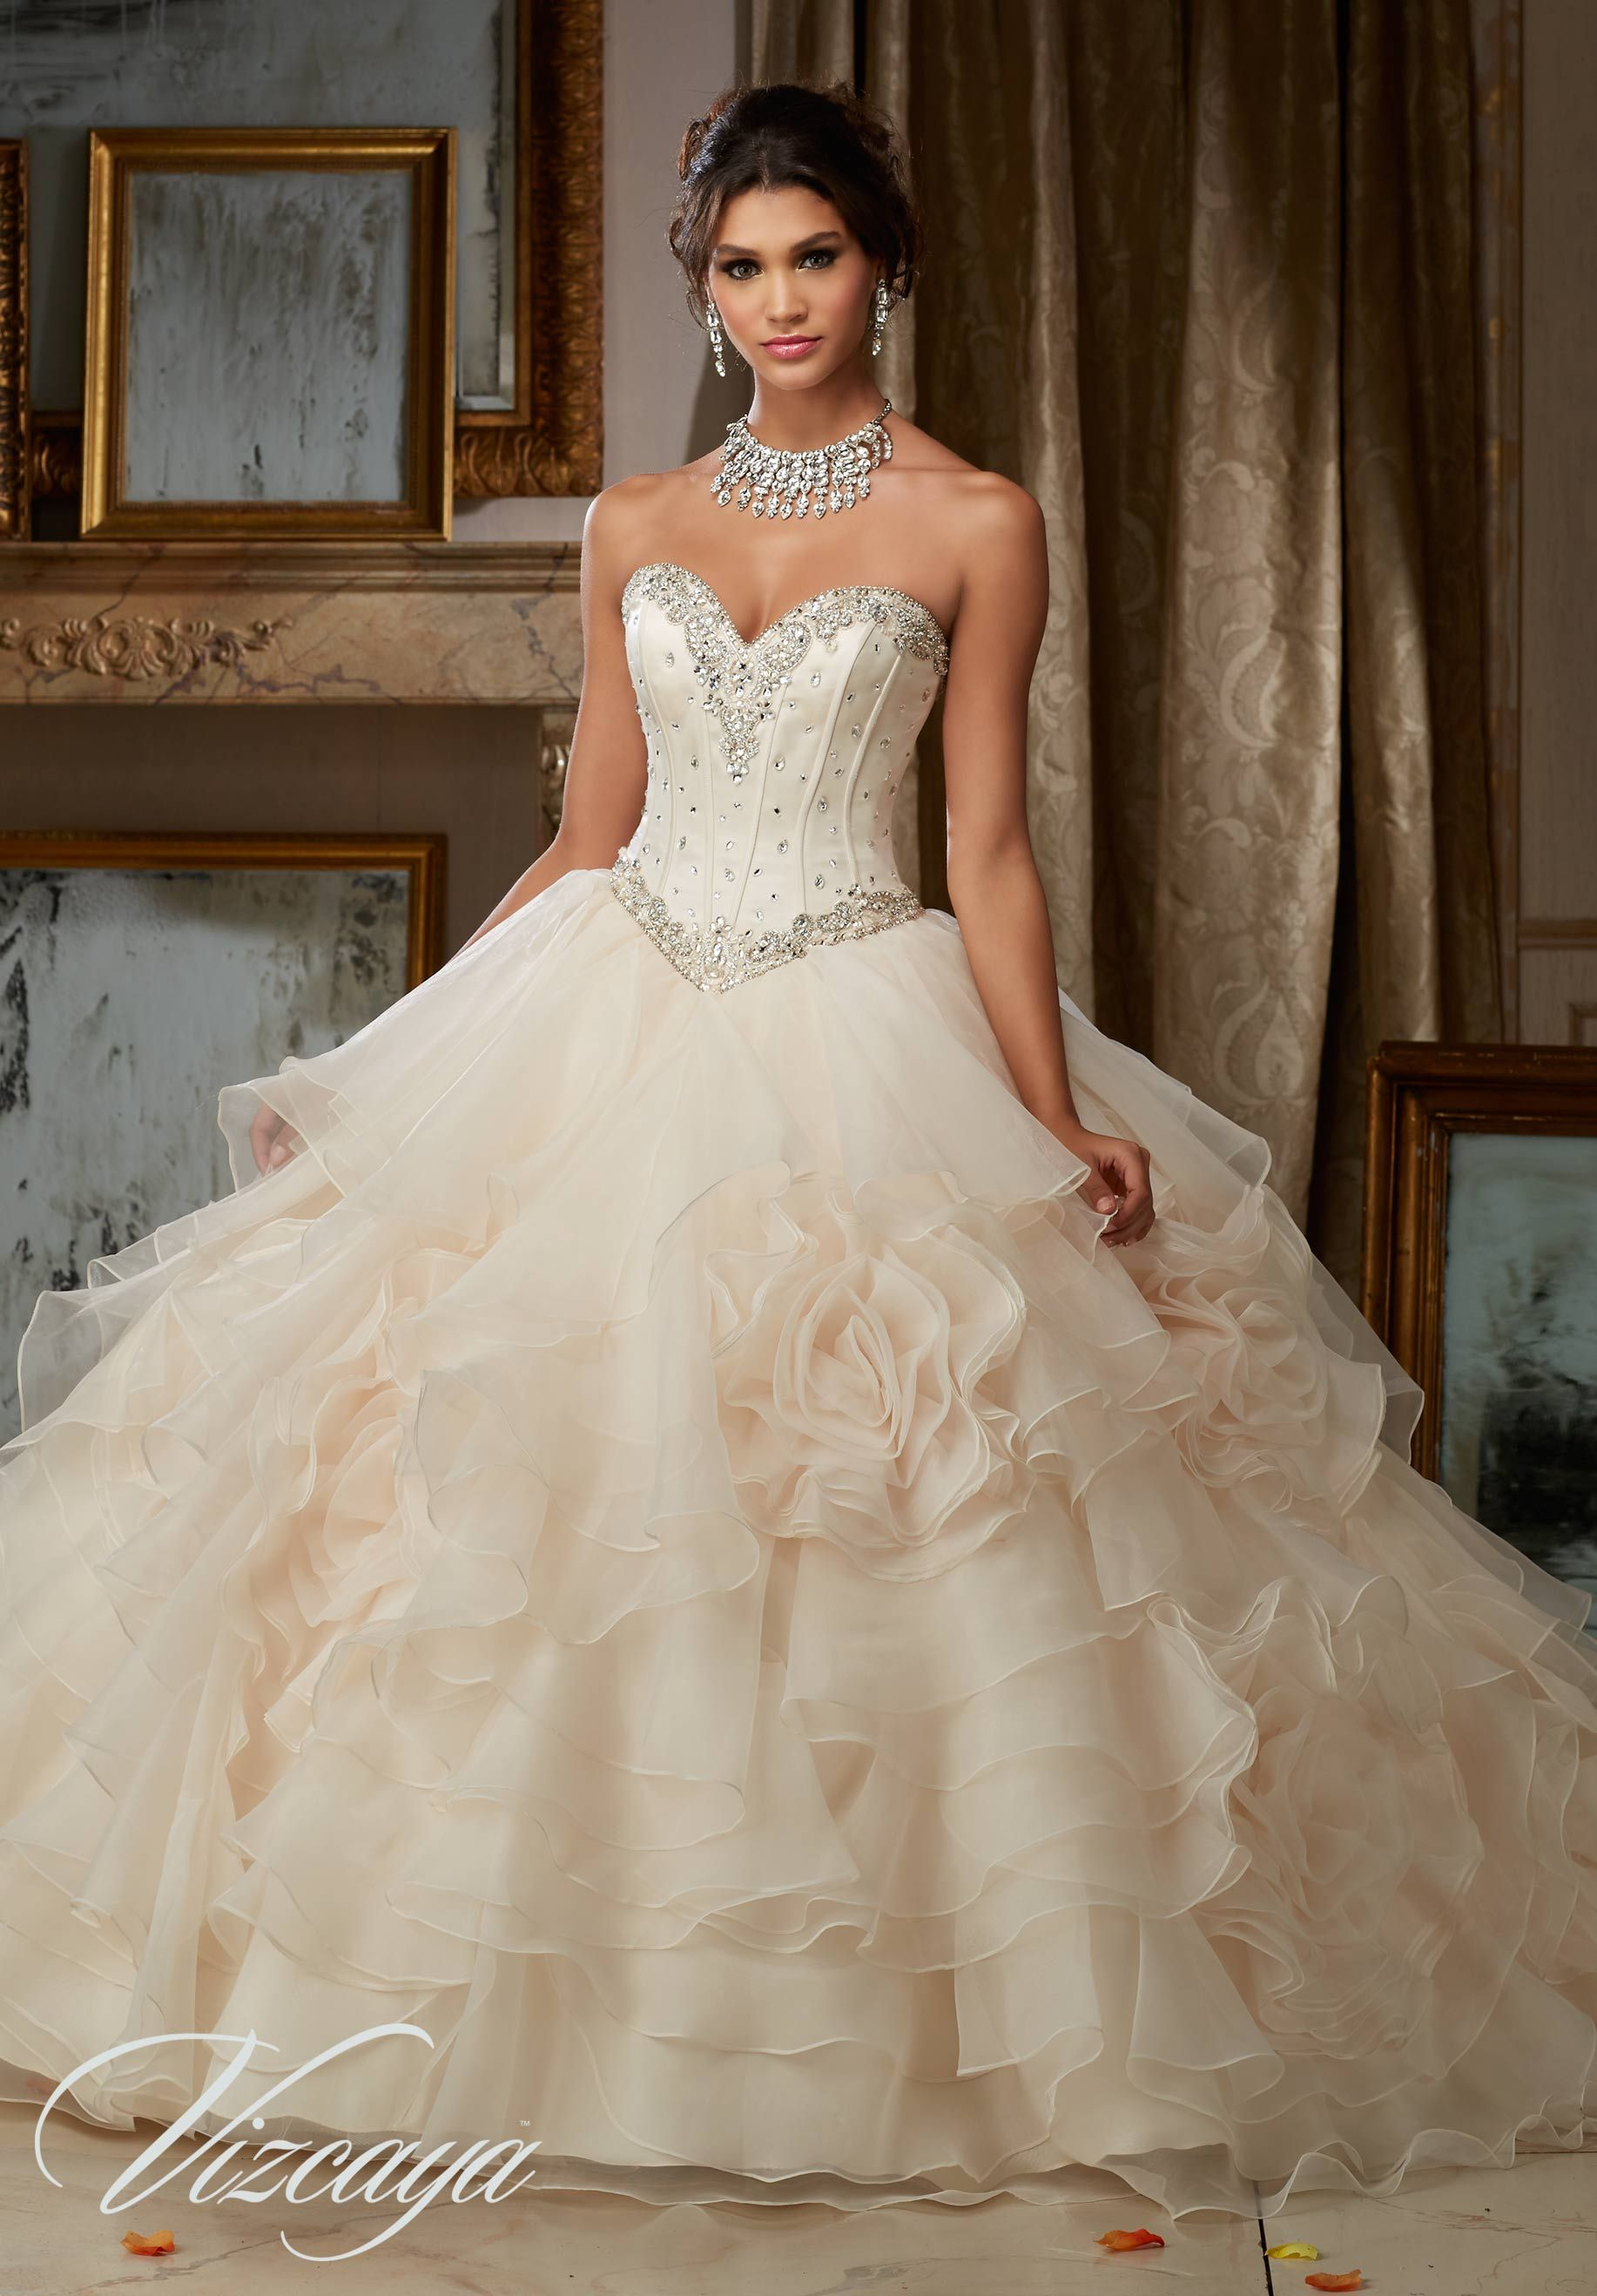 The Latest White Quinceanera Dresses By Your Favorite Designers Quinceanera Ball Gowns Wedding Quinceanera Dresses Ball Dresses [ 2636 x 1834 Pixel ]